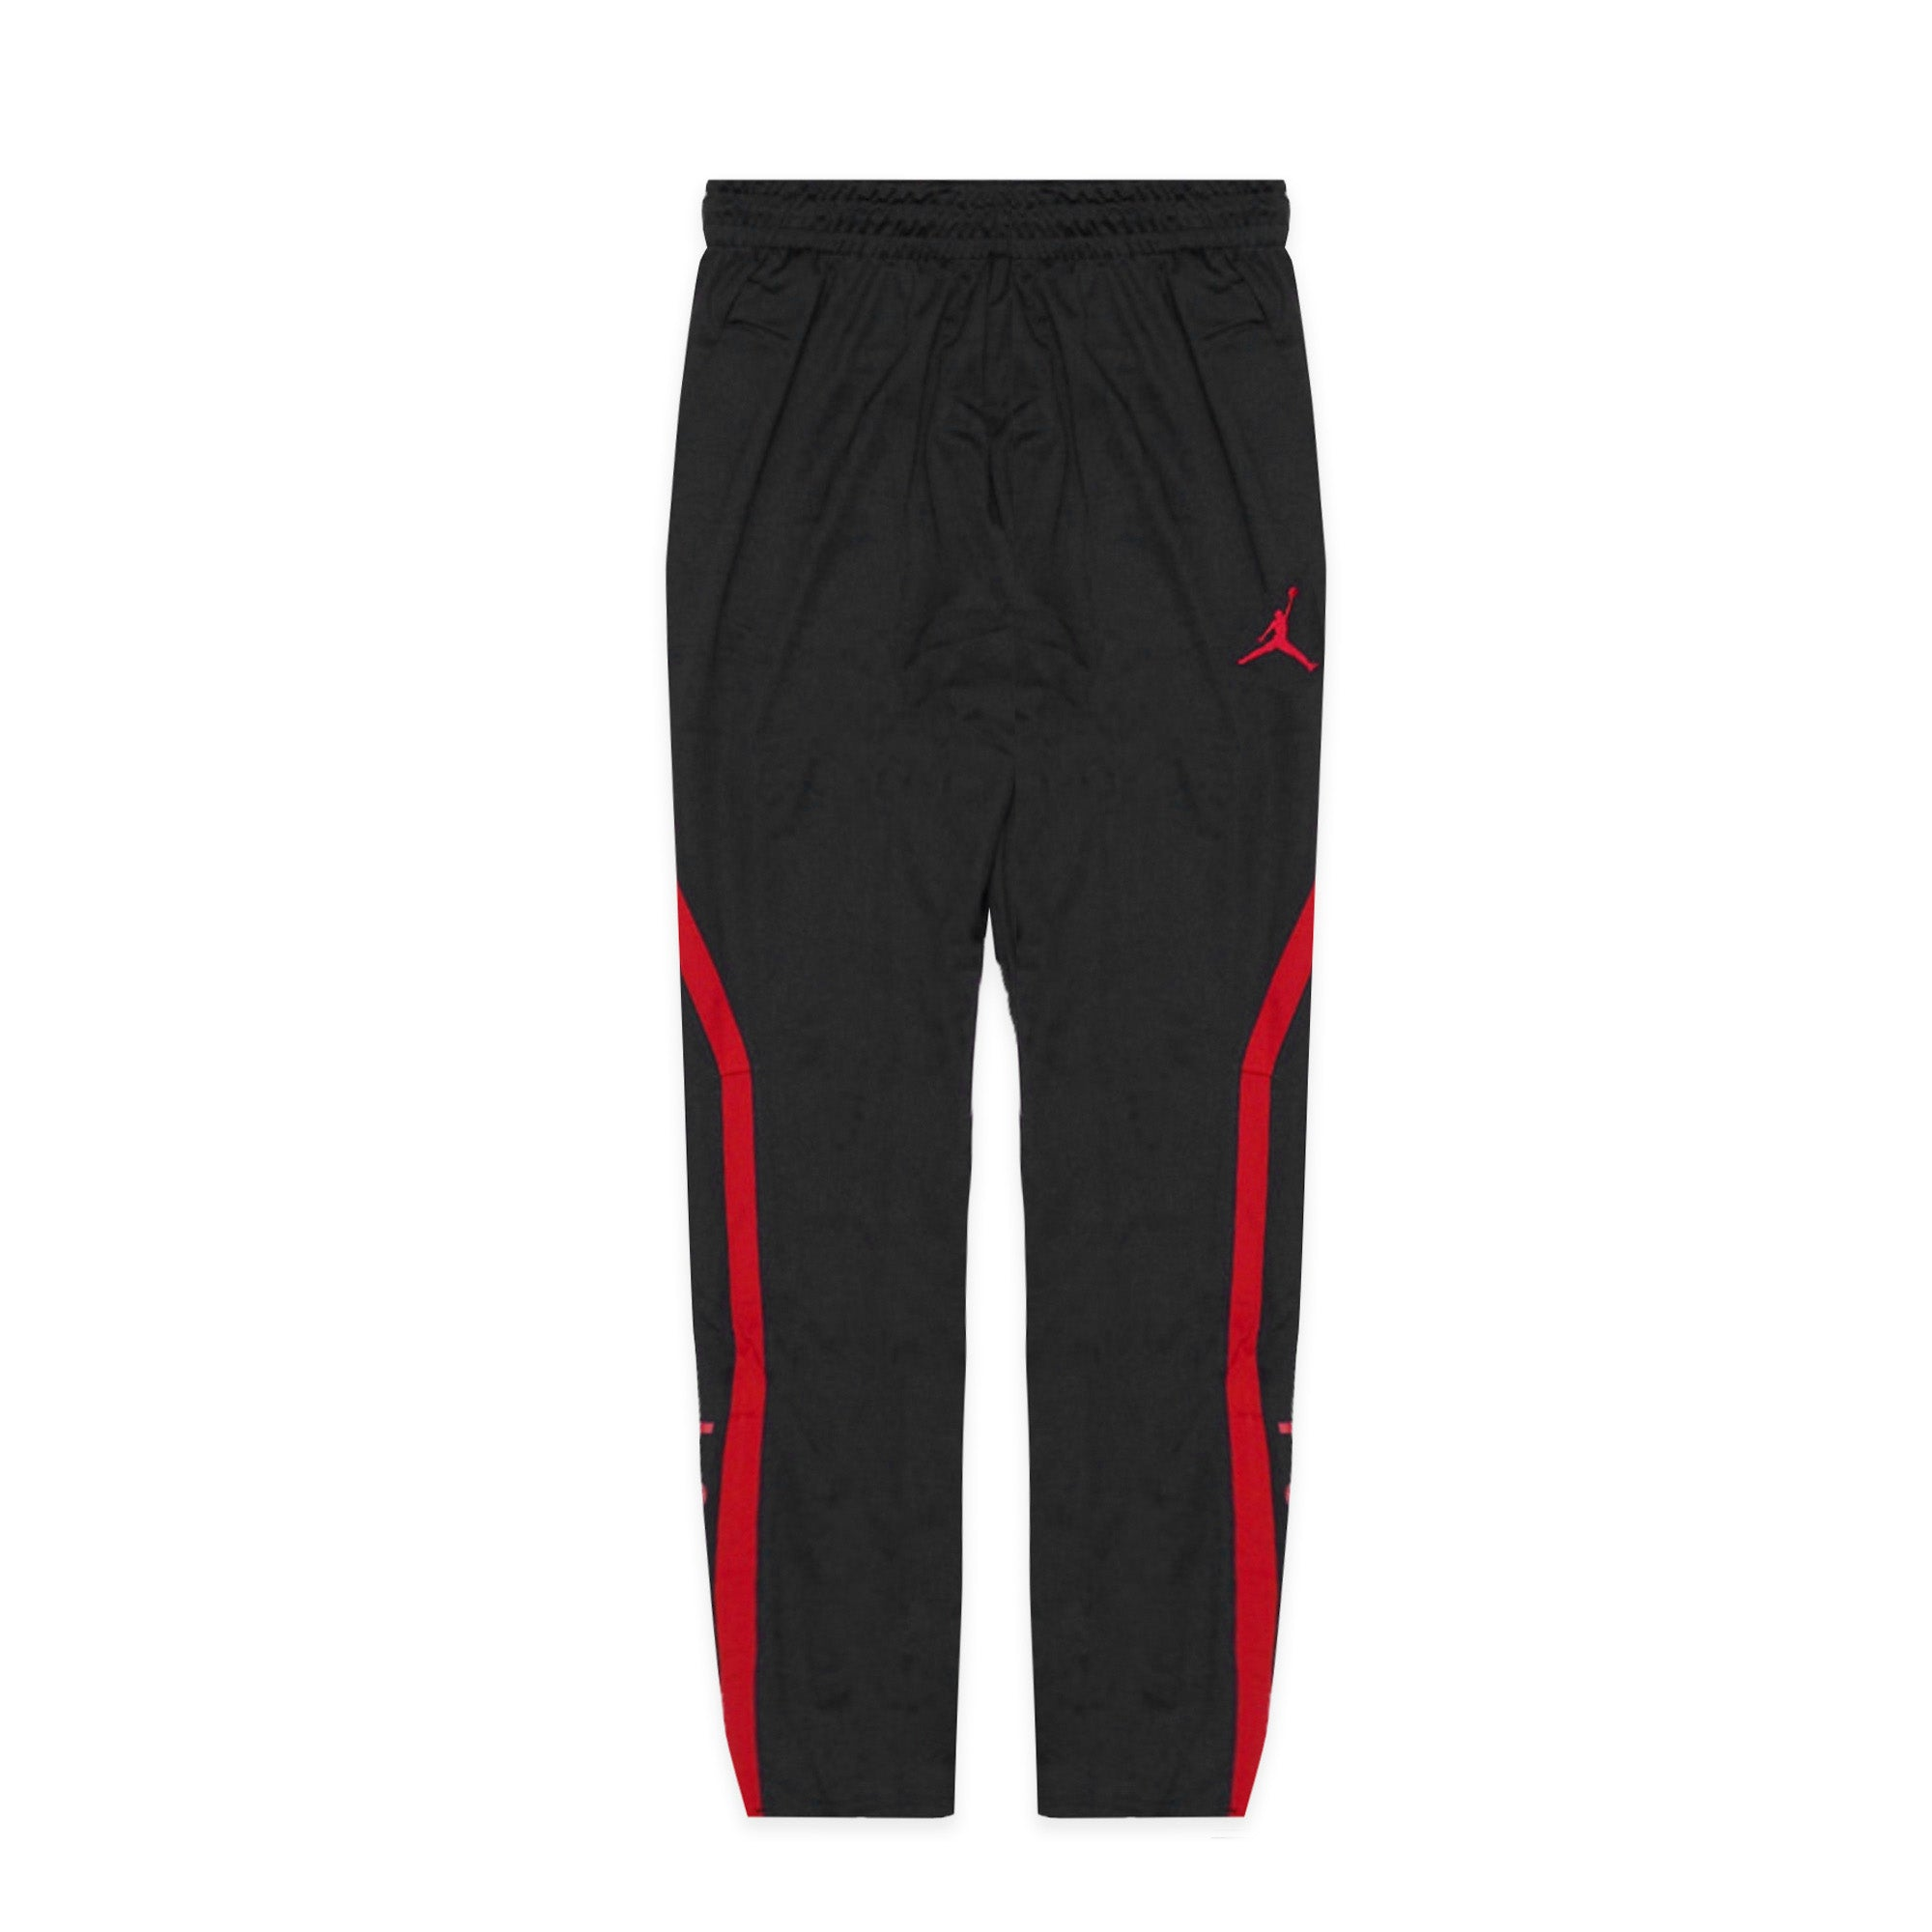 ab21788f696 Air Jordan Dri-Fit 23 Alpha Basketball Pants [889711-011]